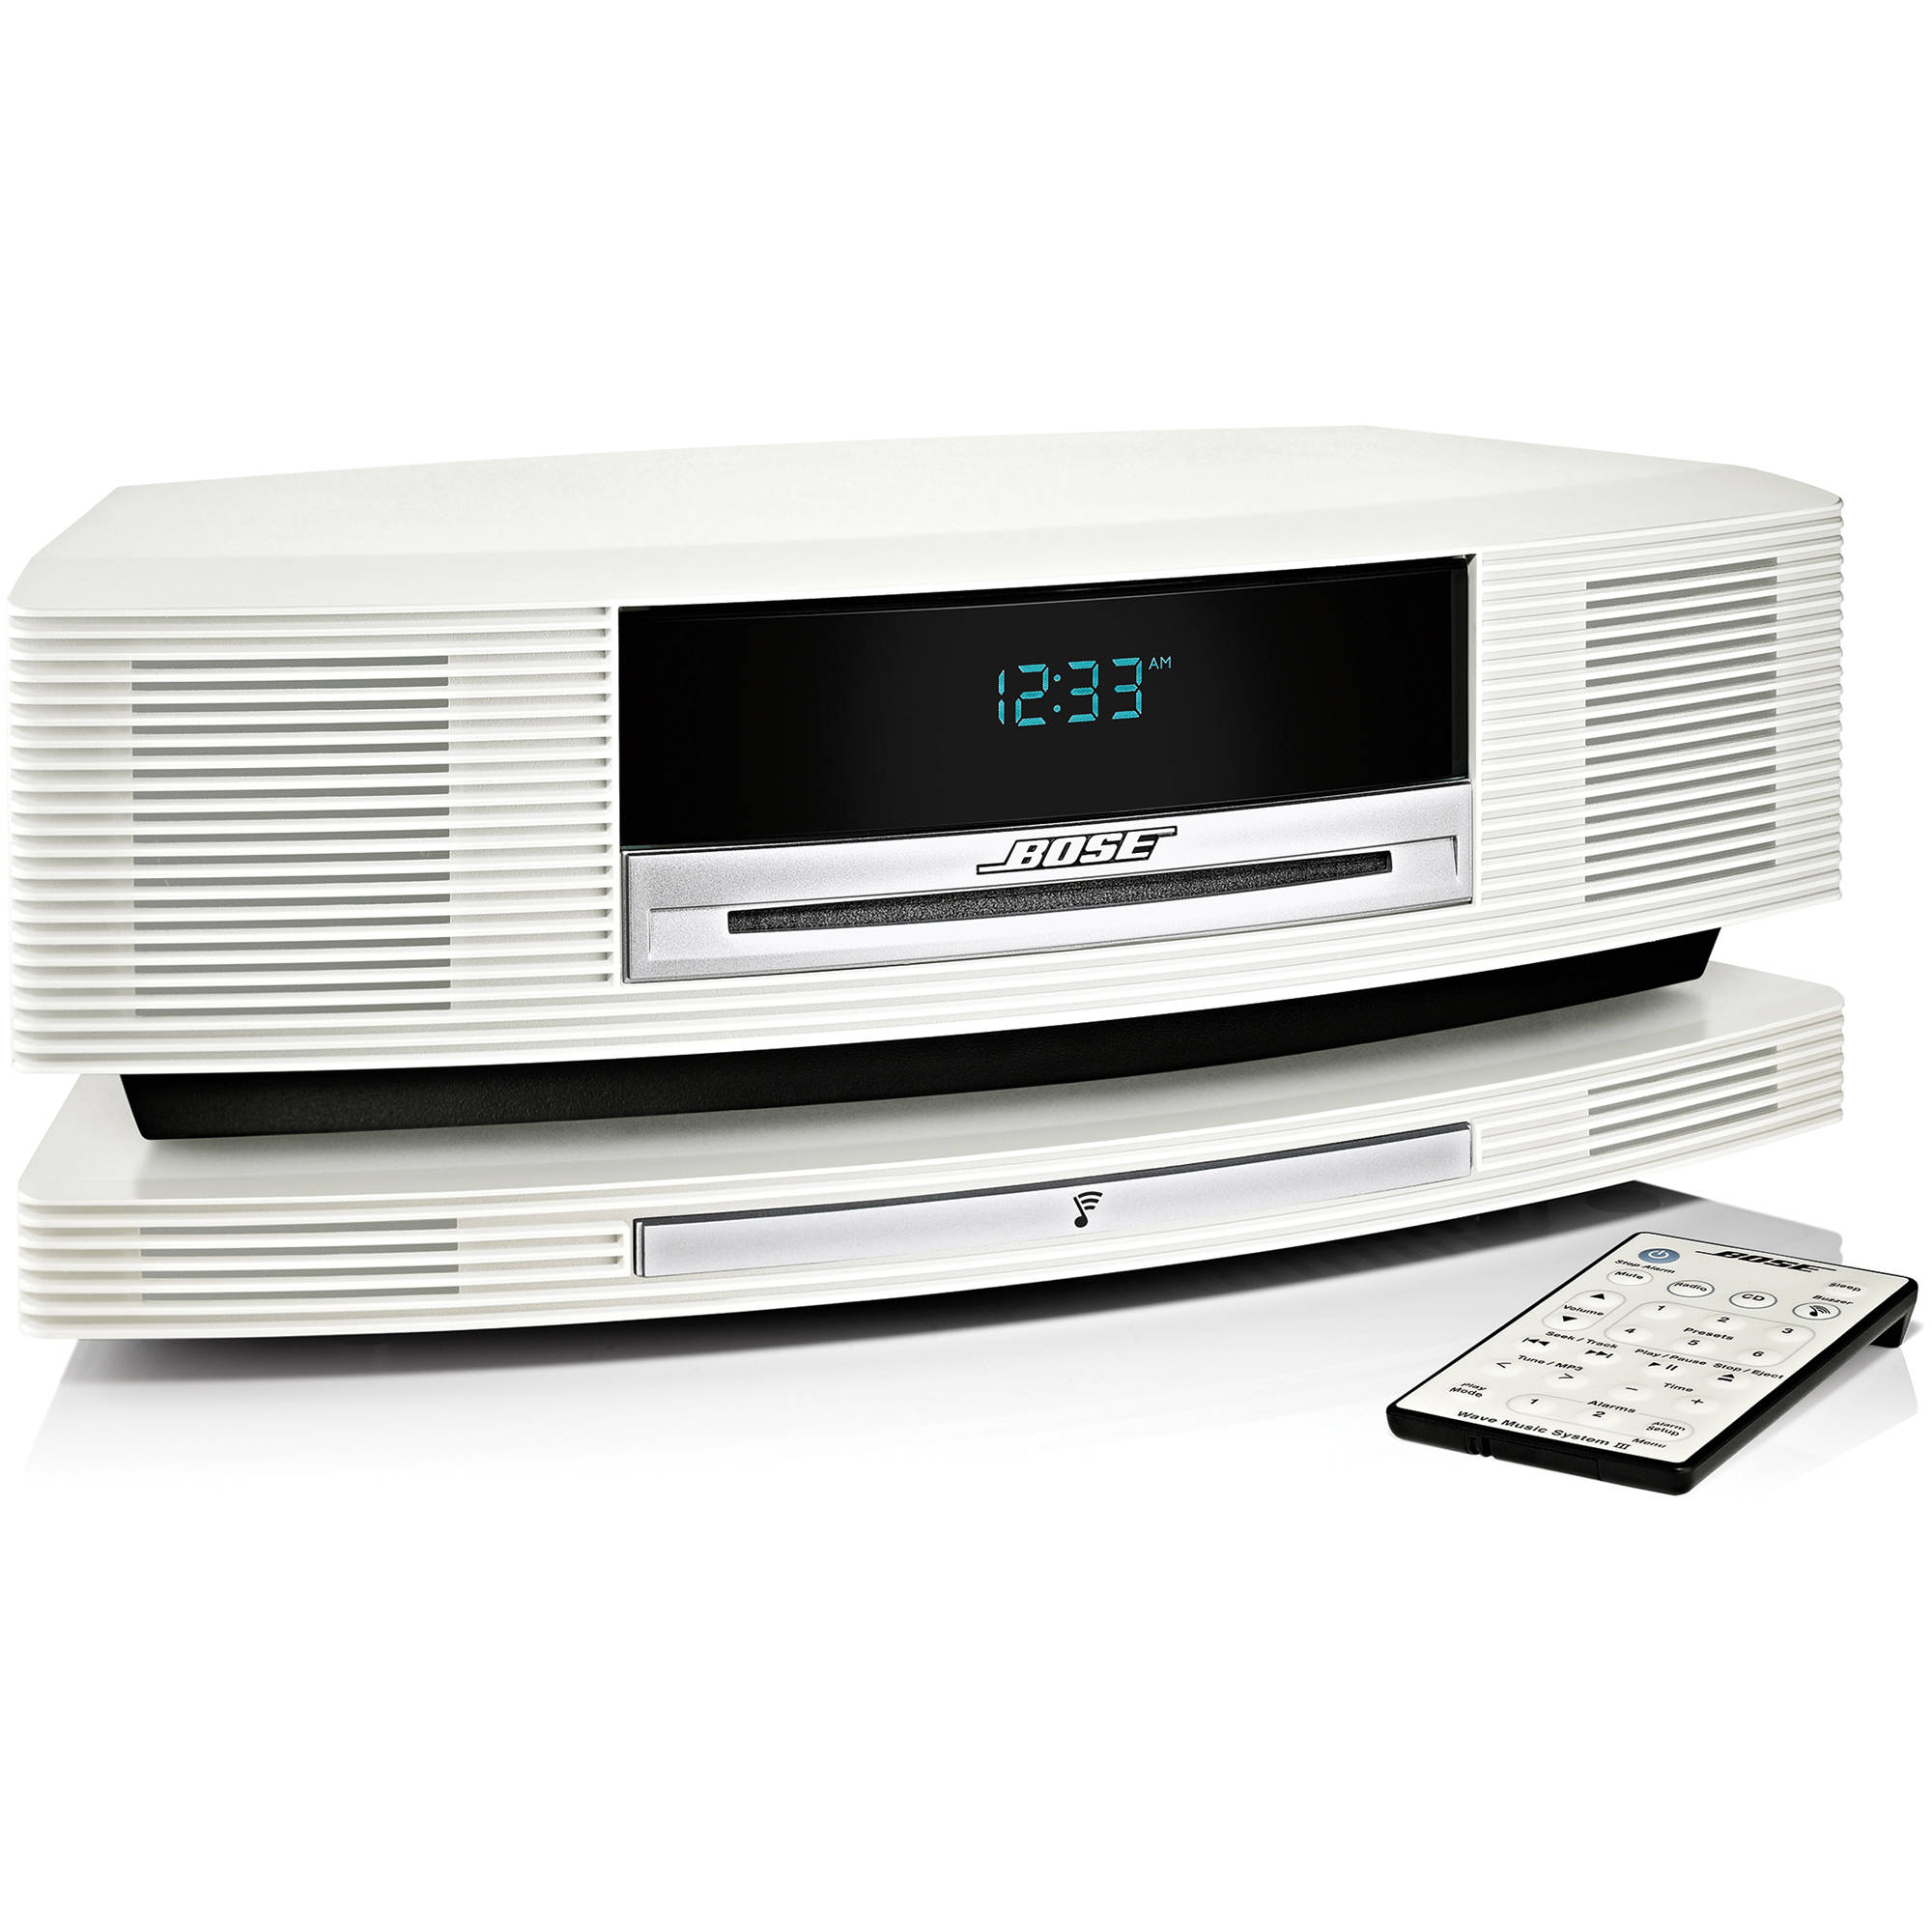 Bose Wave SoundTouch Music System - CD-R - CD-DA, MP3, WMA, AAC, Apple  Lossless Playback - 1 Disc(s) - Platinum White